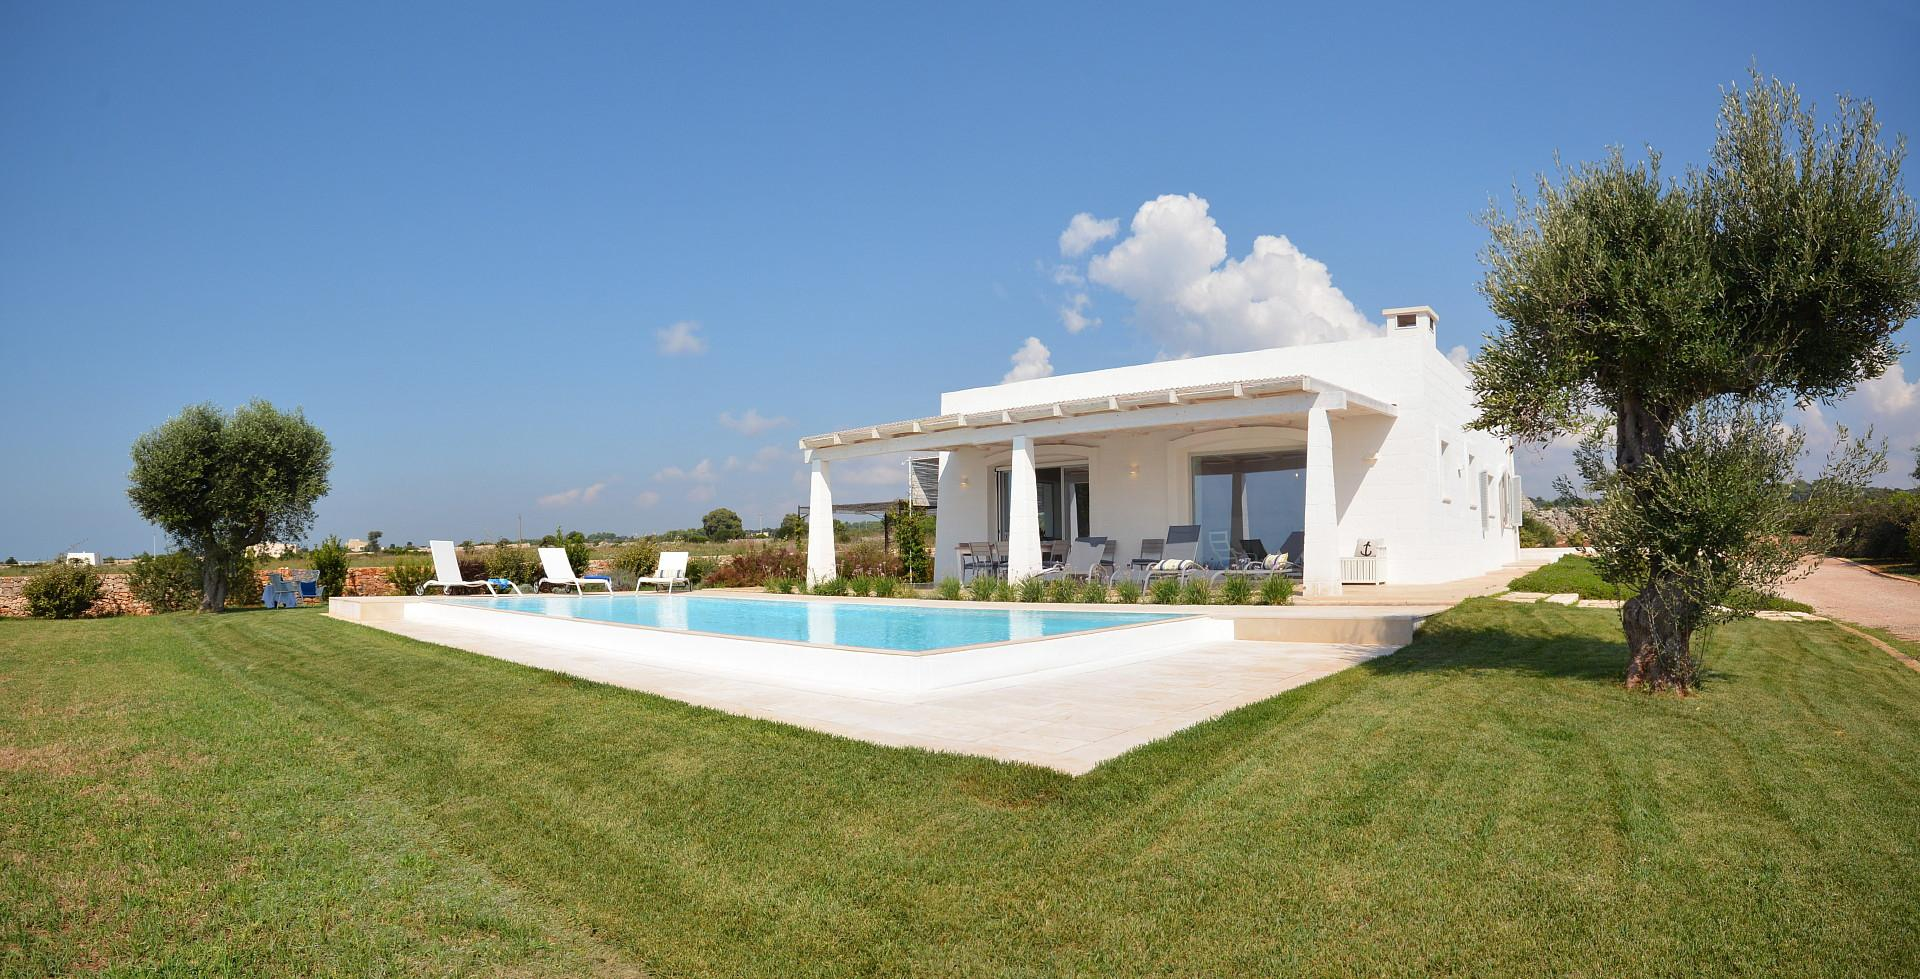 The villa and the pool